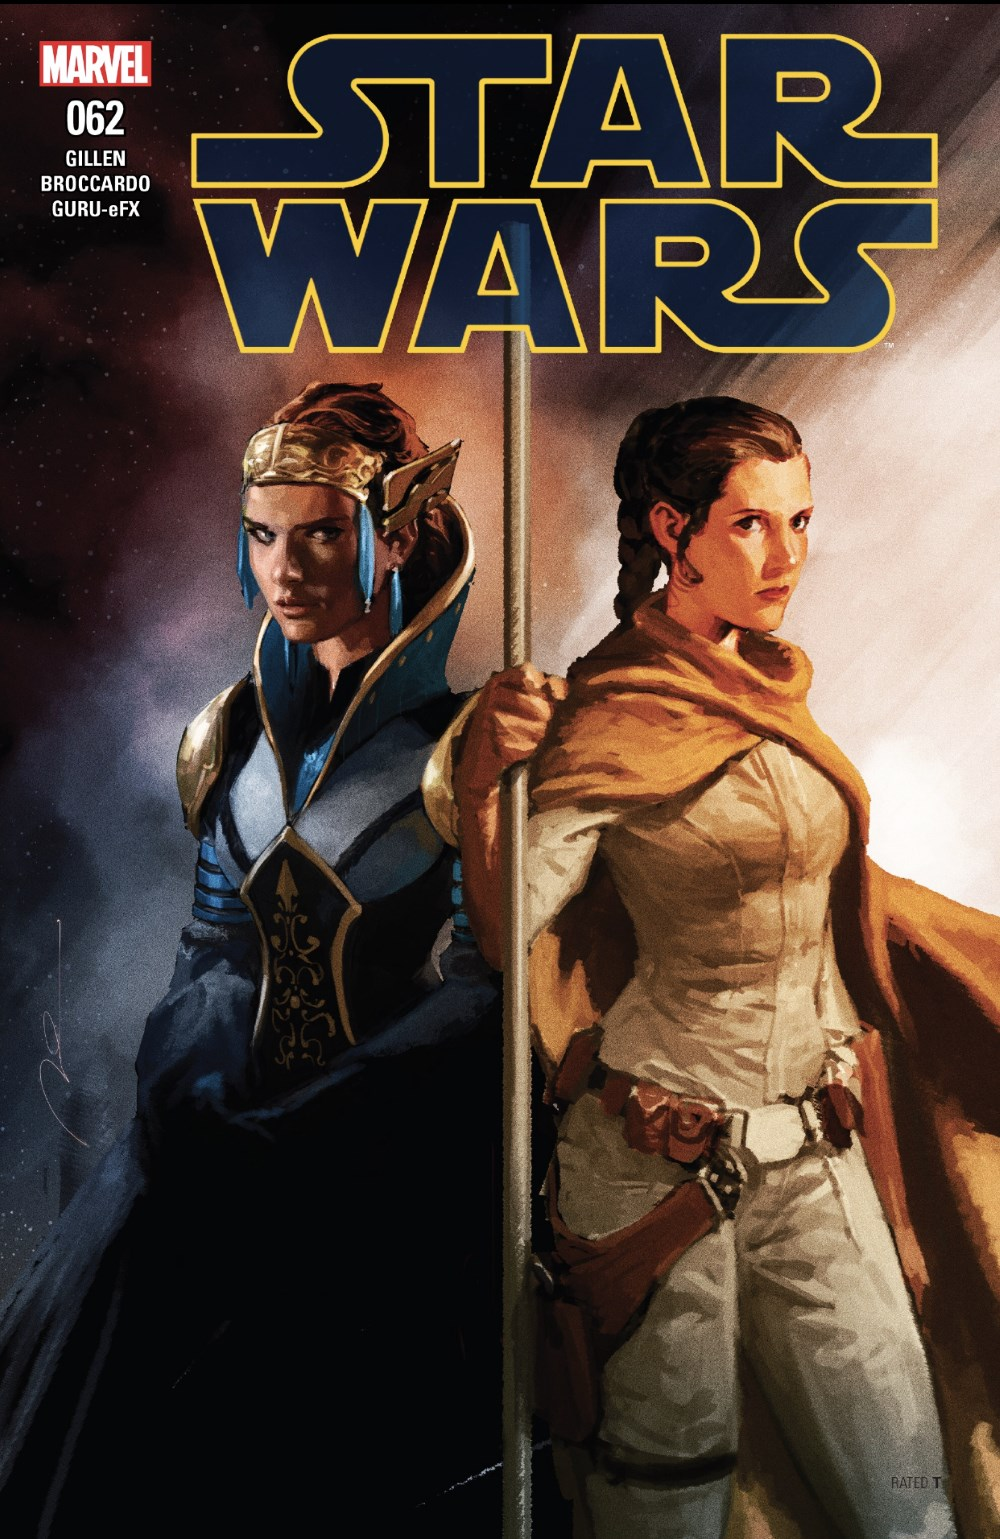 Star Wars #62 Cover